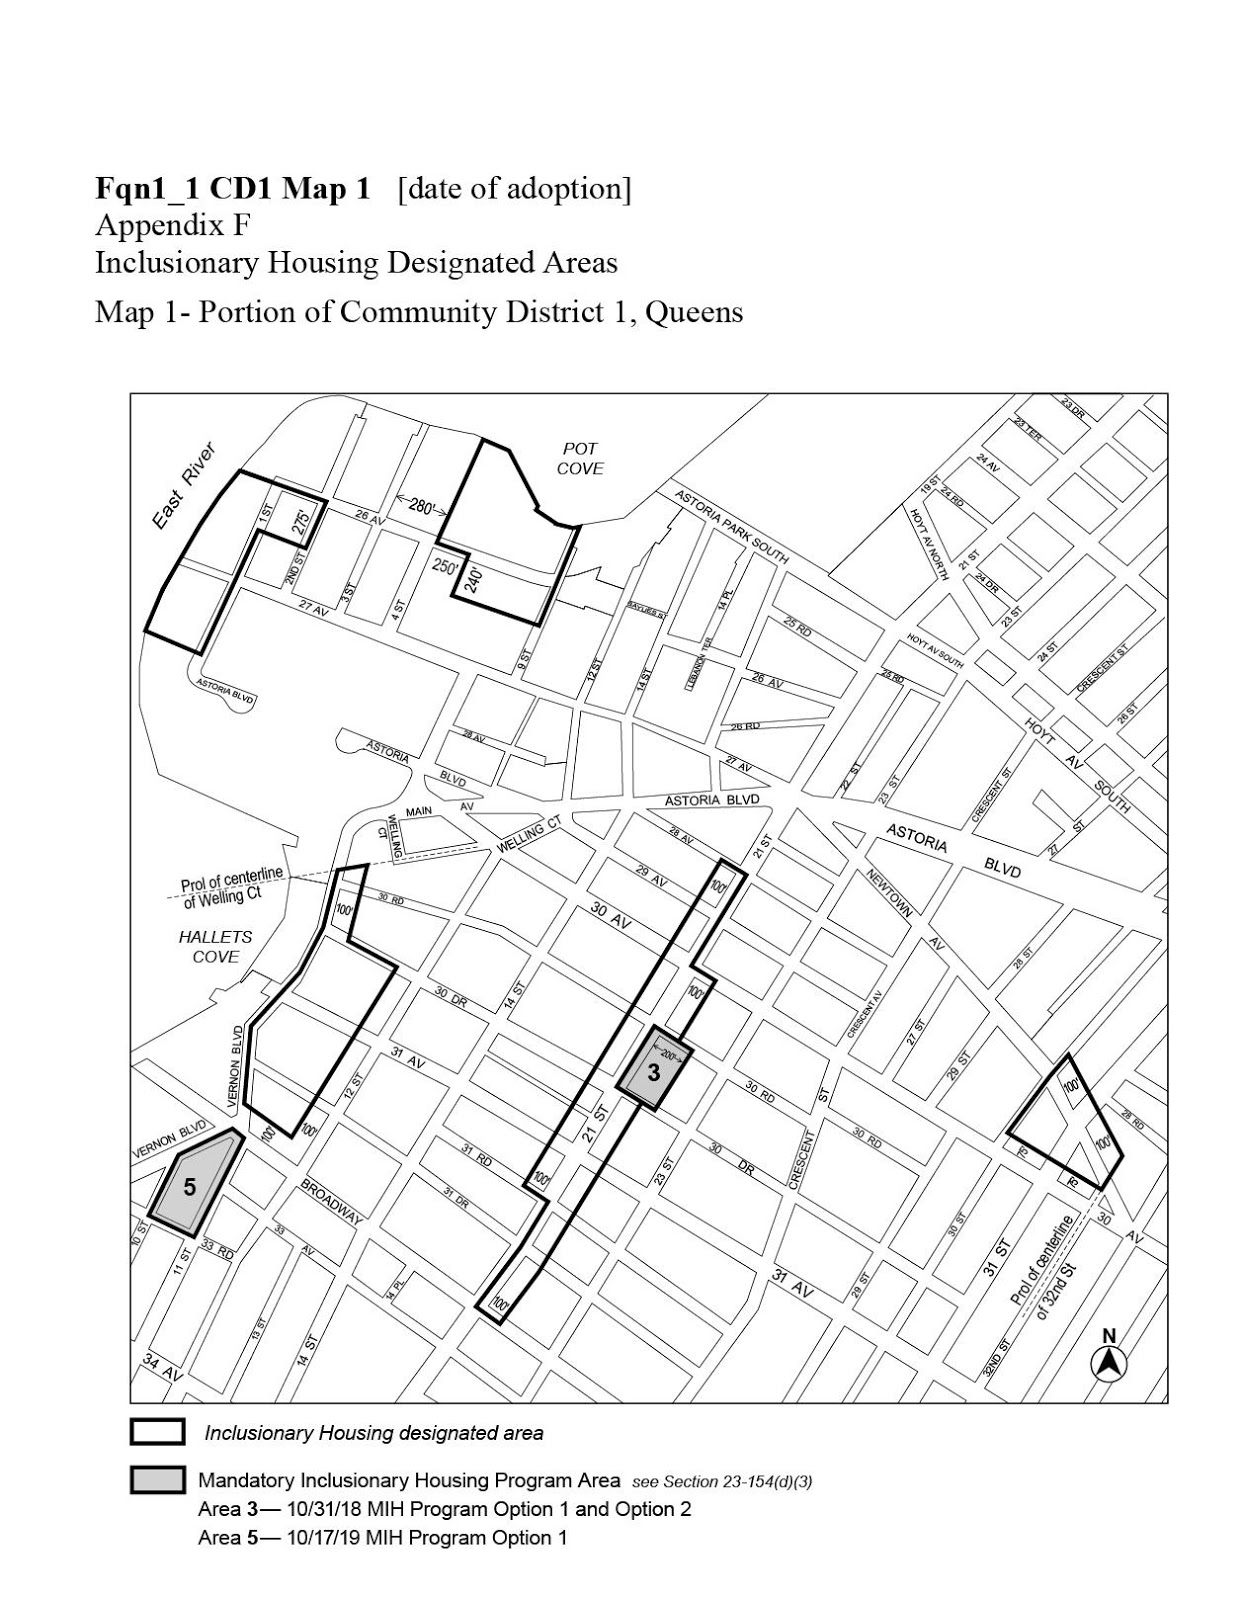 Zoning Resolutions F-Inclusionary Housing Designated Areas and Mandatory Inclusionary Housing Areas_2.108